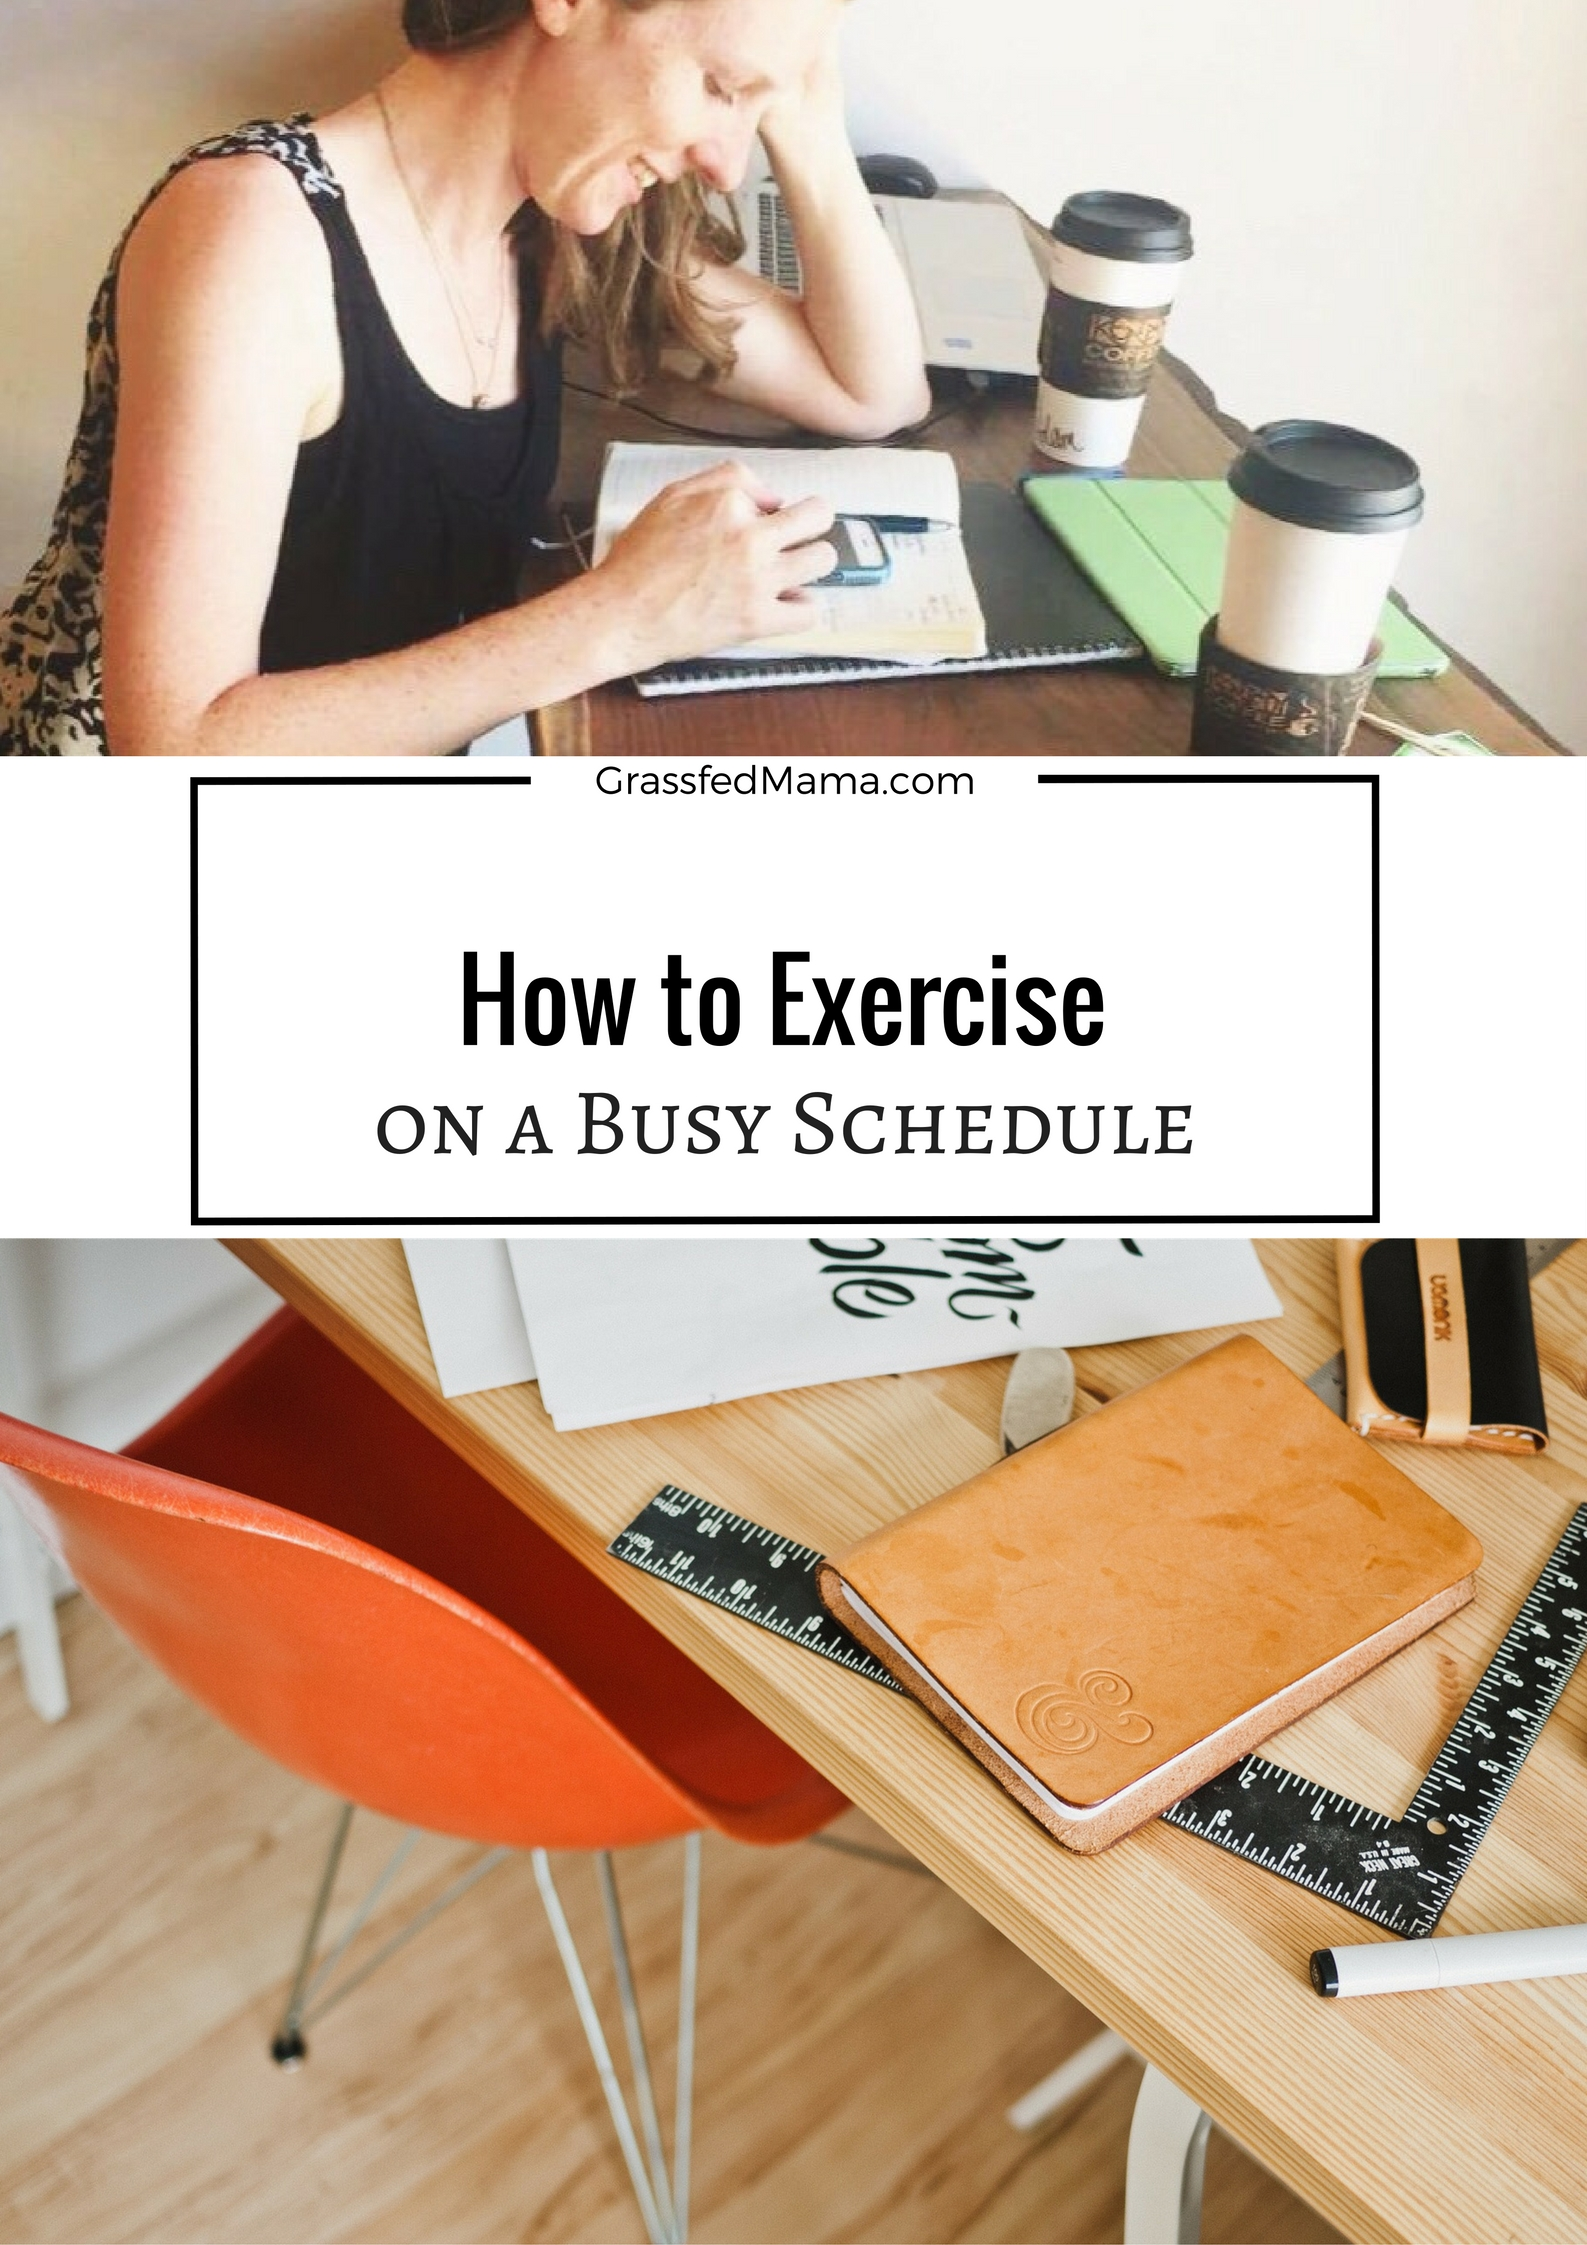 How to Exercise on a busy schedule